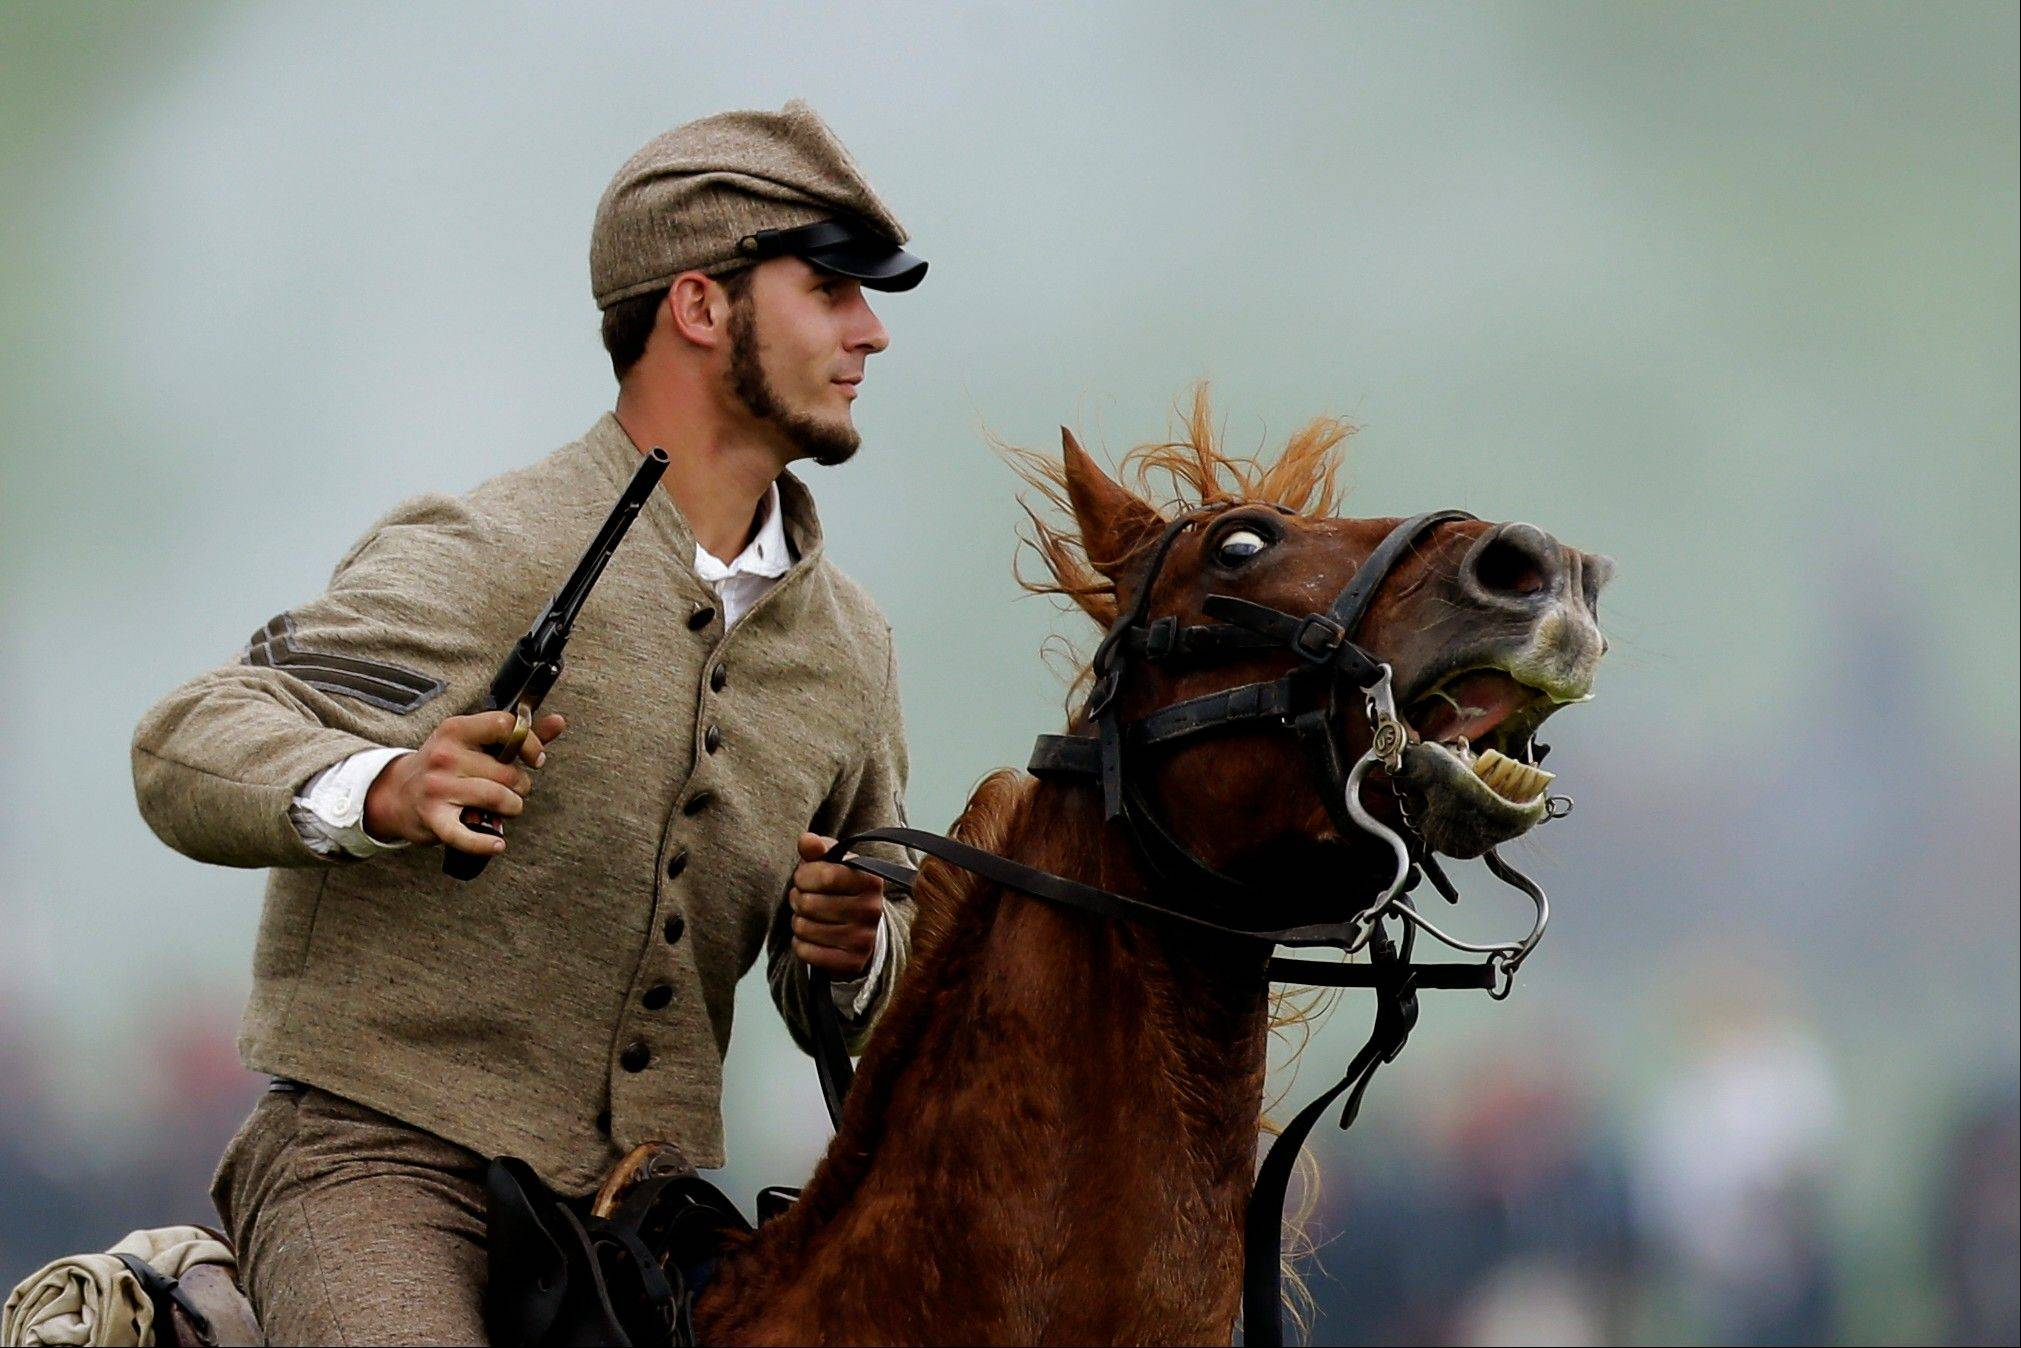 A mounted Confederate re-enactor takes part in a demonstration of a battle during ongoing activities commemorating the 150th anniversary of the Battle of Gettysburg on Friday at Bushey Farm in Gettysburg, Pa.